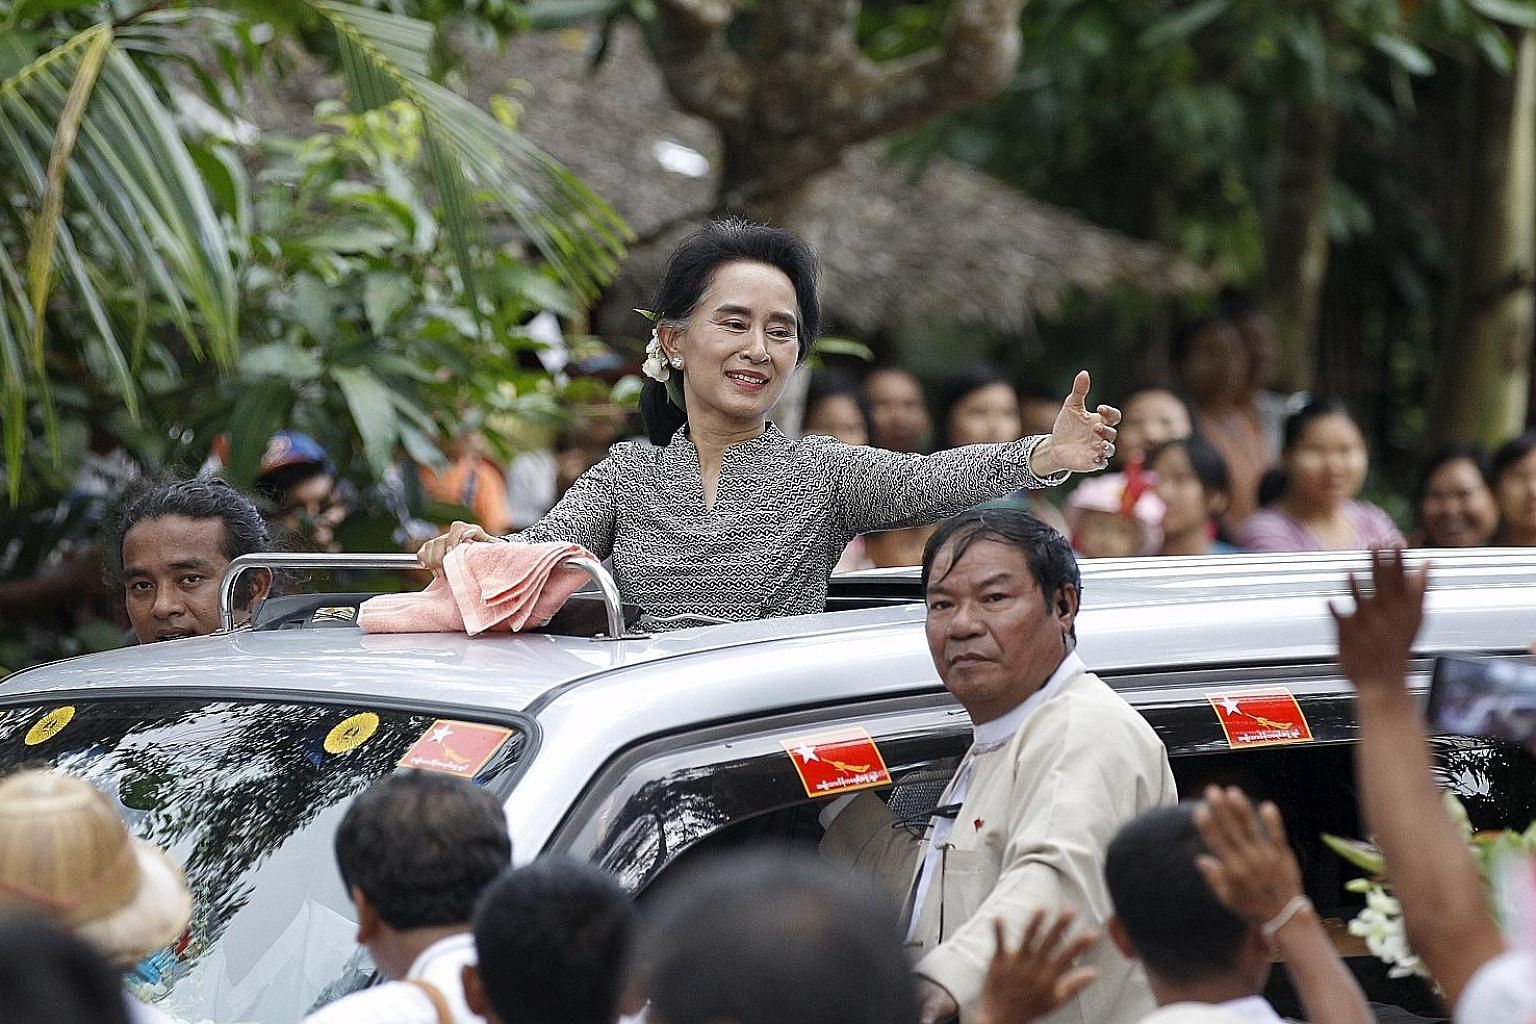 Myanmar pro-democracy leader Aung San Suu Kyi waving to supporters while on the third week of her campaign in Kawhmu, outside Yangon, yesterday. Myanmar's powerful army chief has said women are welcome to lead the country, but hurdles still stand in